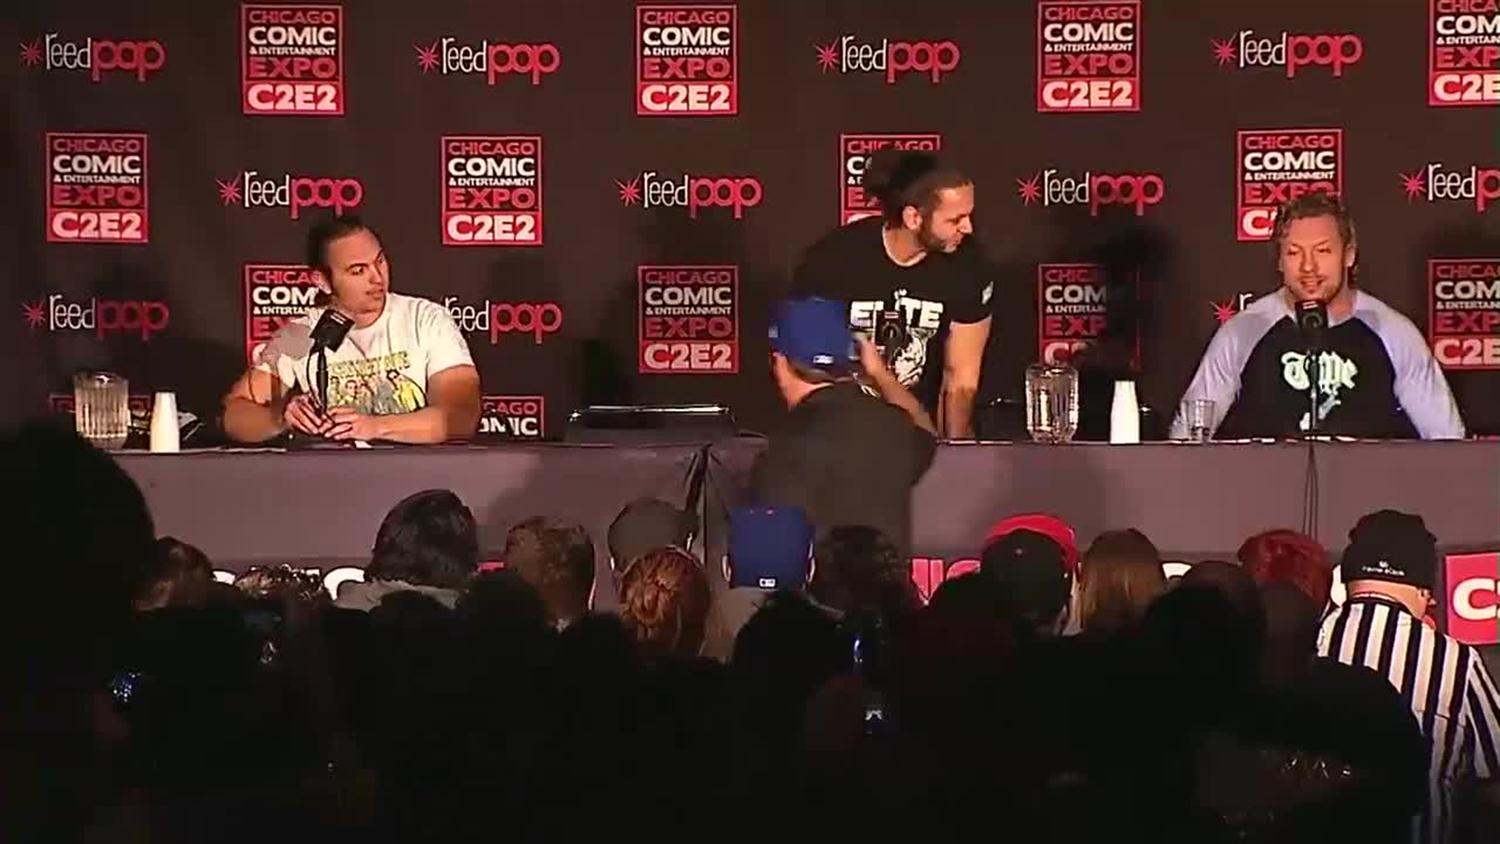 All Elite Wrestling Panel (C2E2 2019)